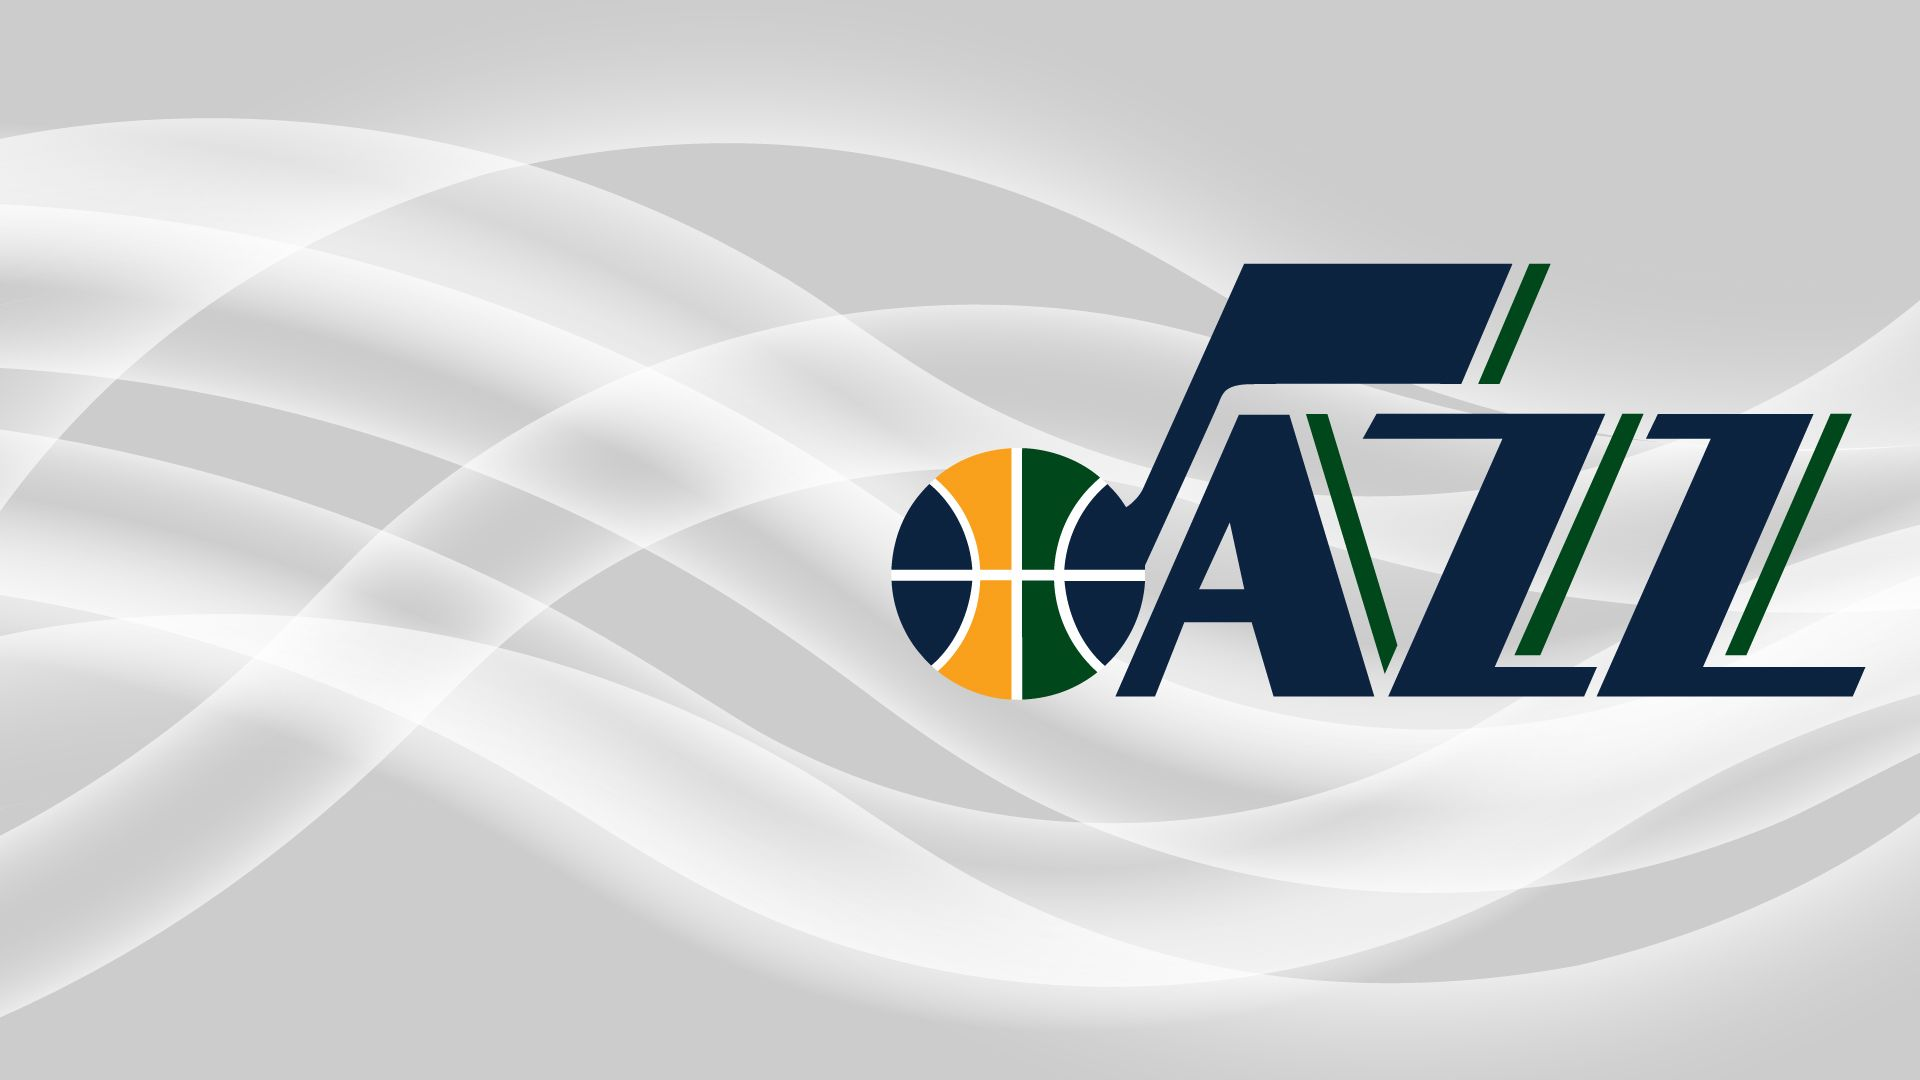 Utah jazz official nba logo poster costacos sports nba 900675 utah jazz official nba logo poster costacos sports nba 900675 utah jazz wallpapers voltagebd Gallery